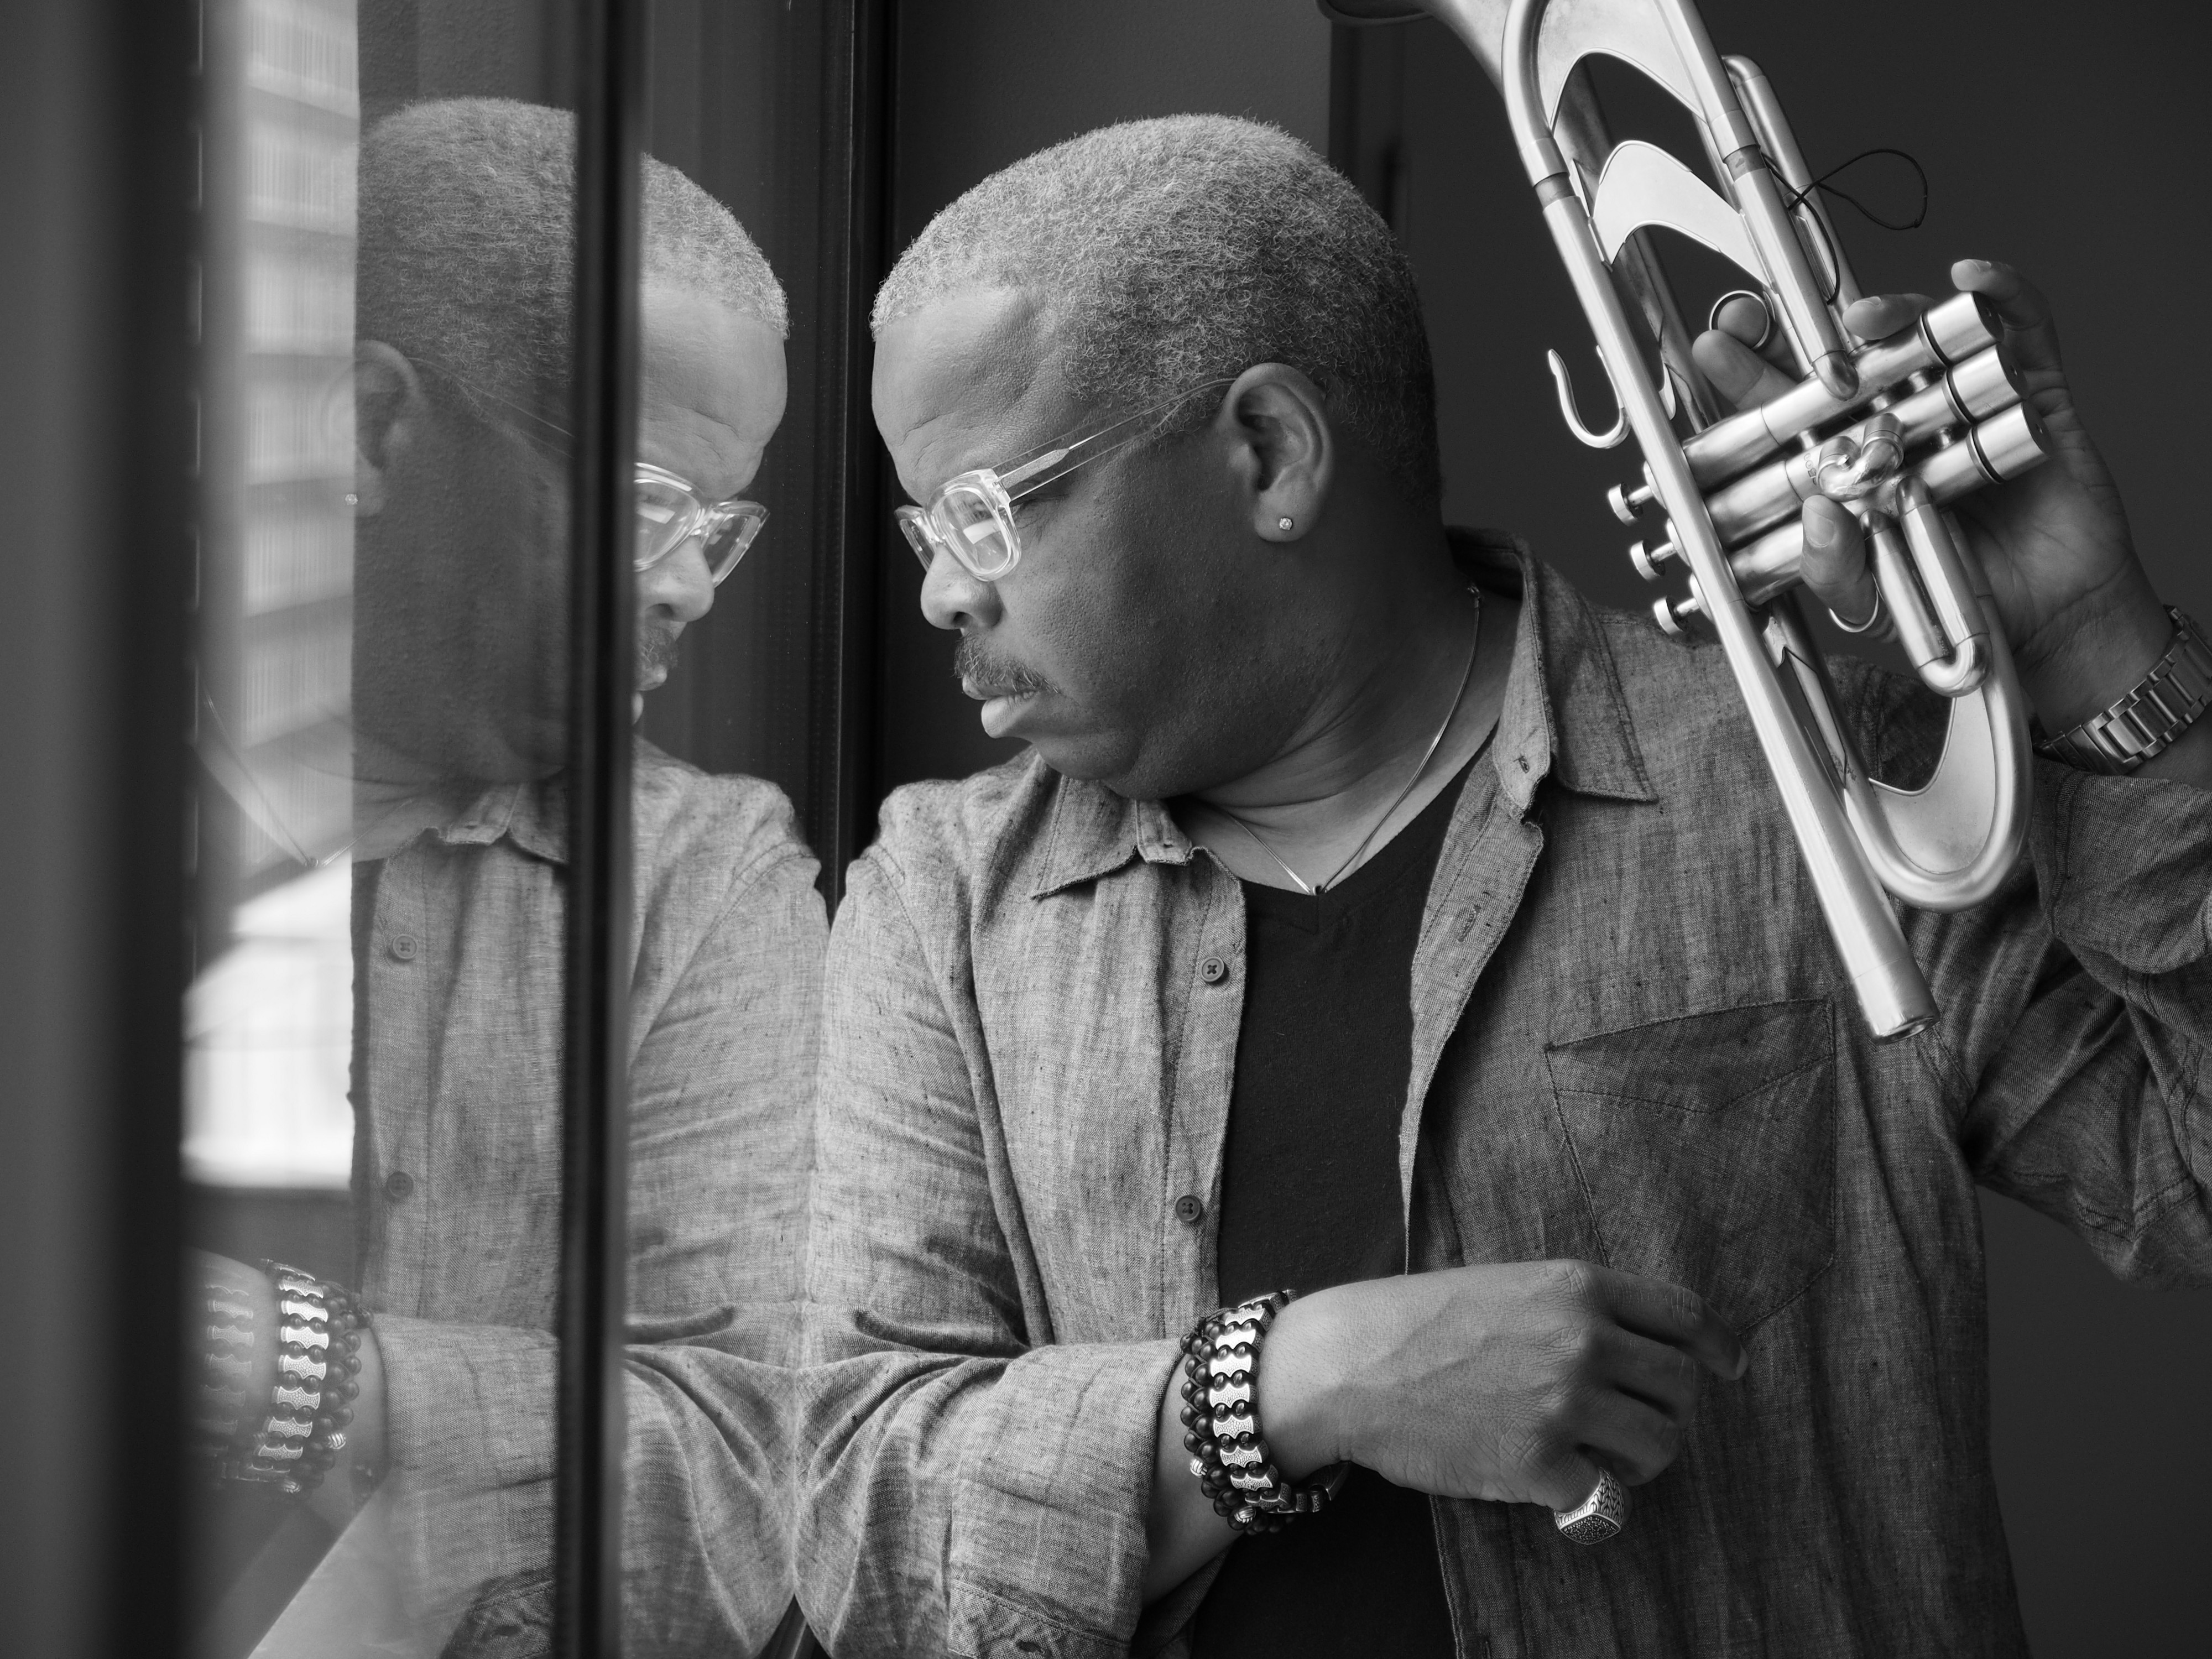 Storyteller: A Conversation with Terence Blanchard - OPERA